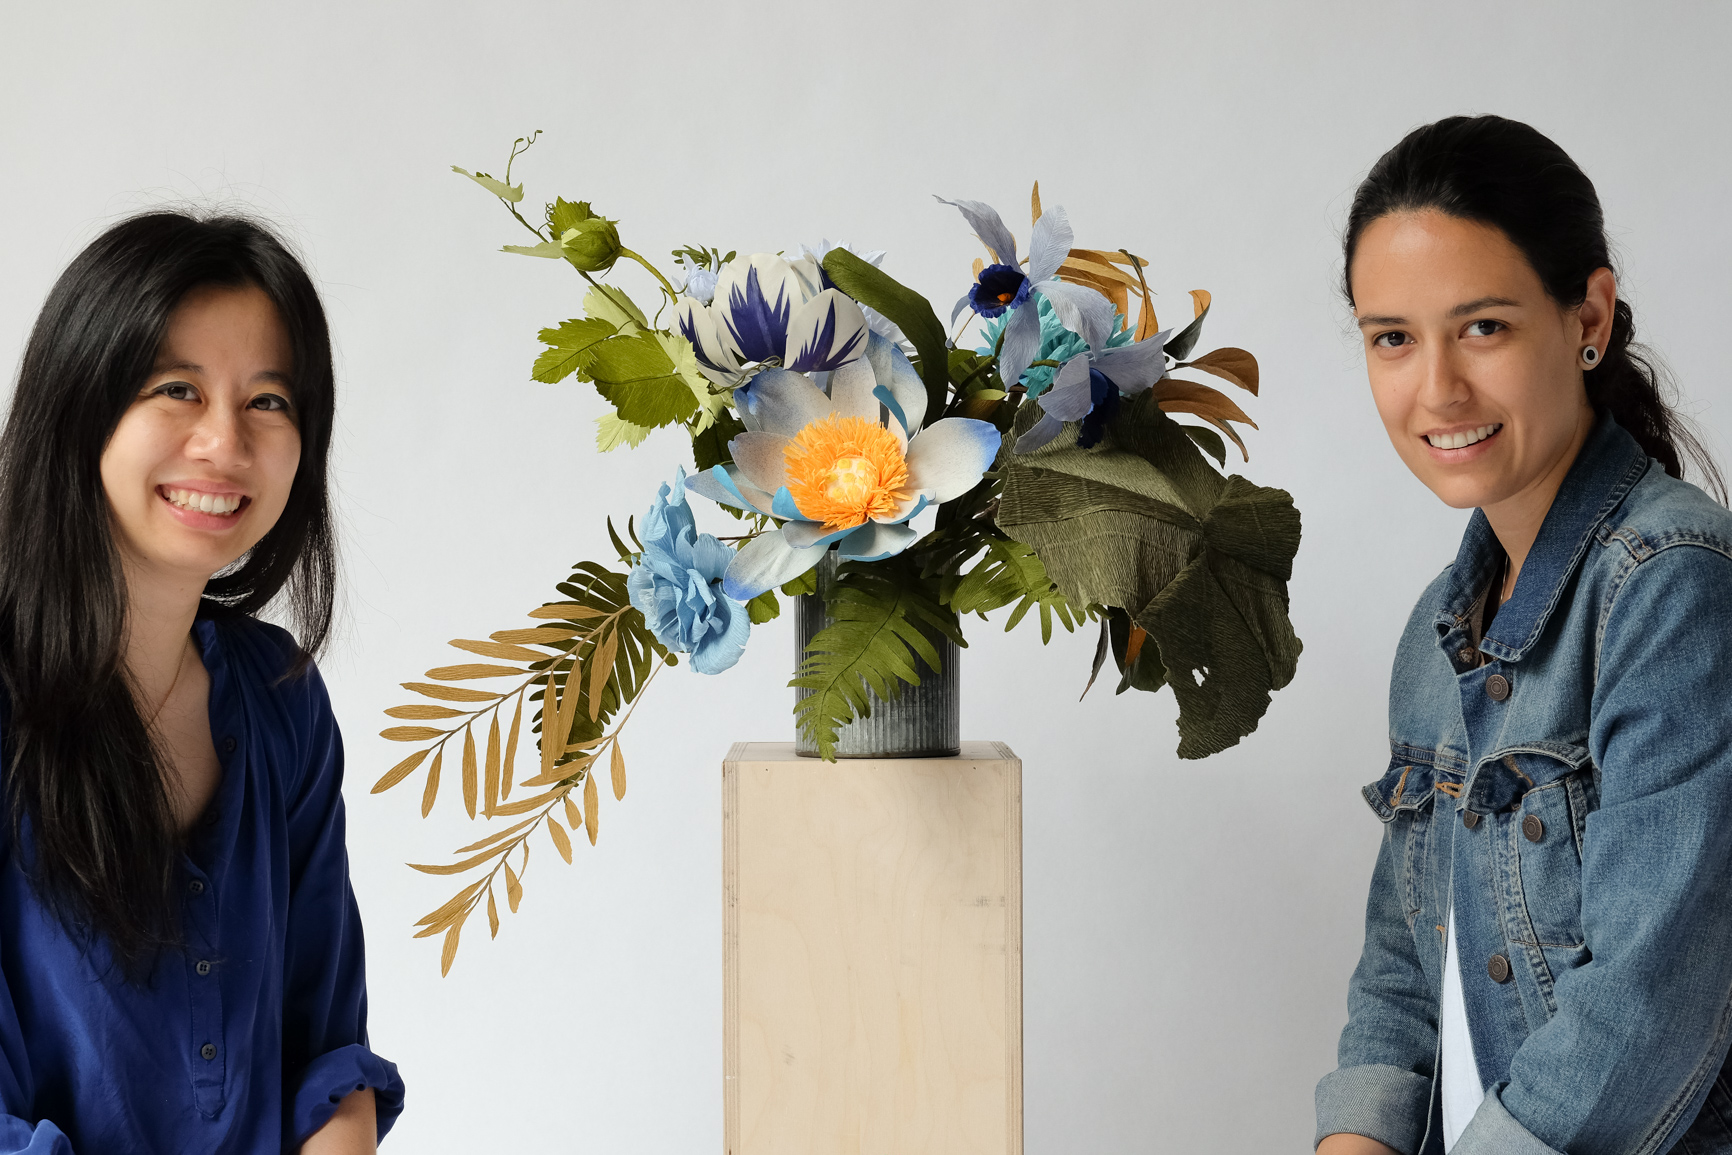 Yang (left) and Anna (right), Photography by Adrian Walker